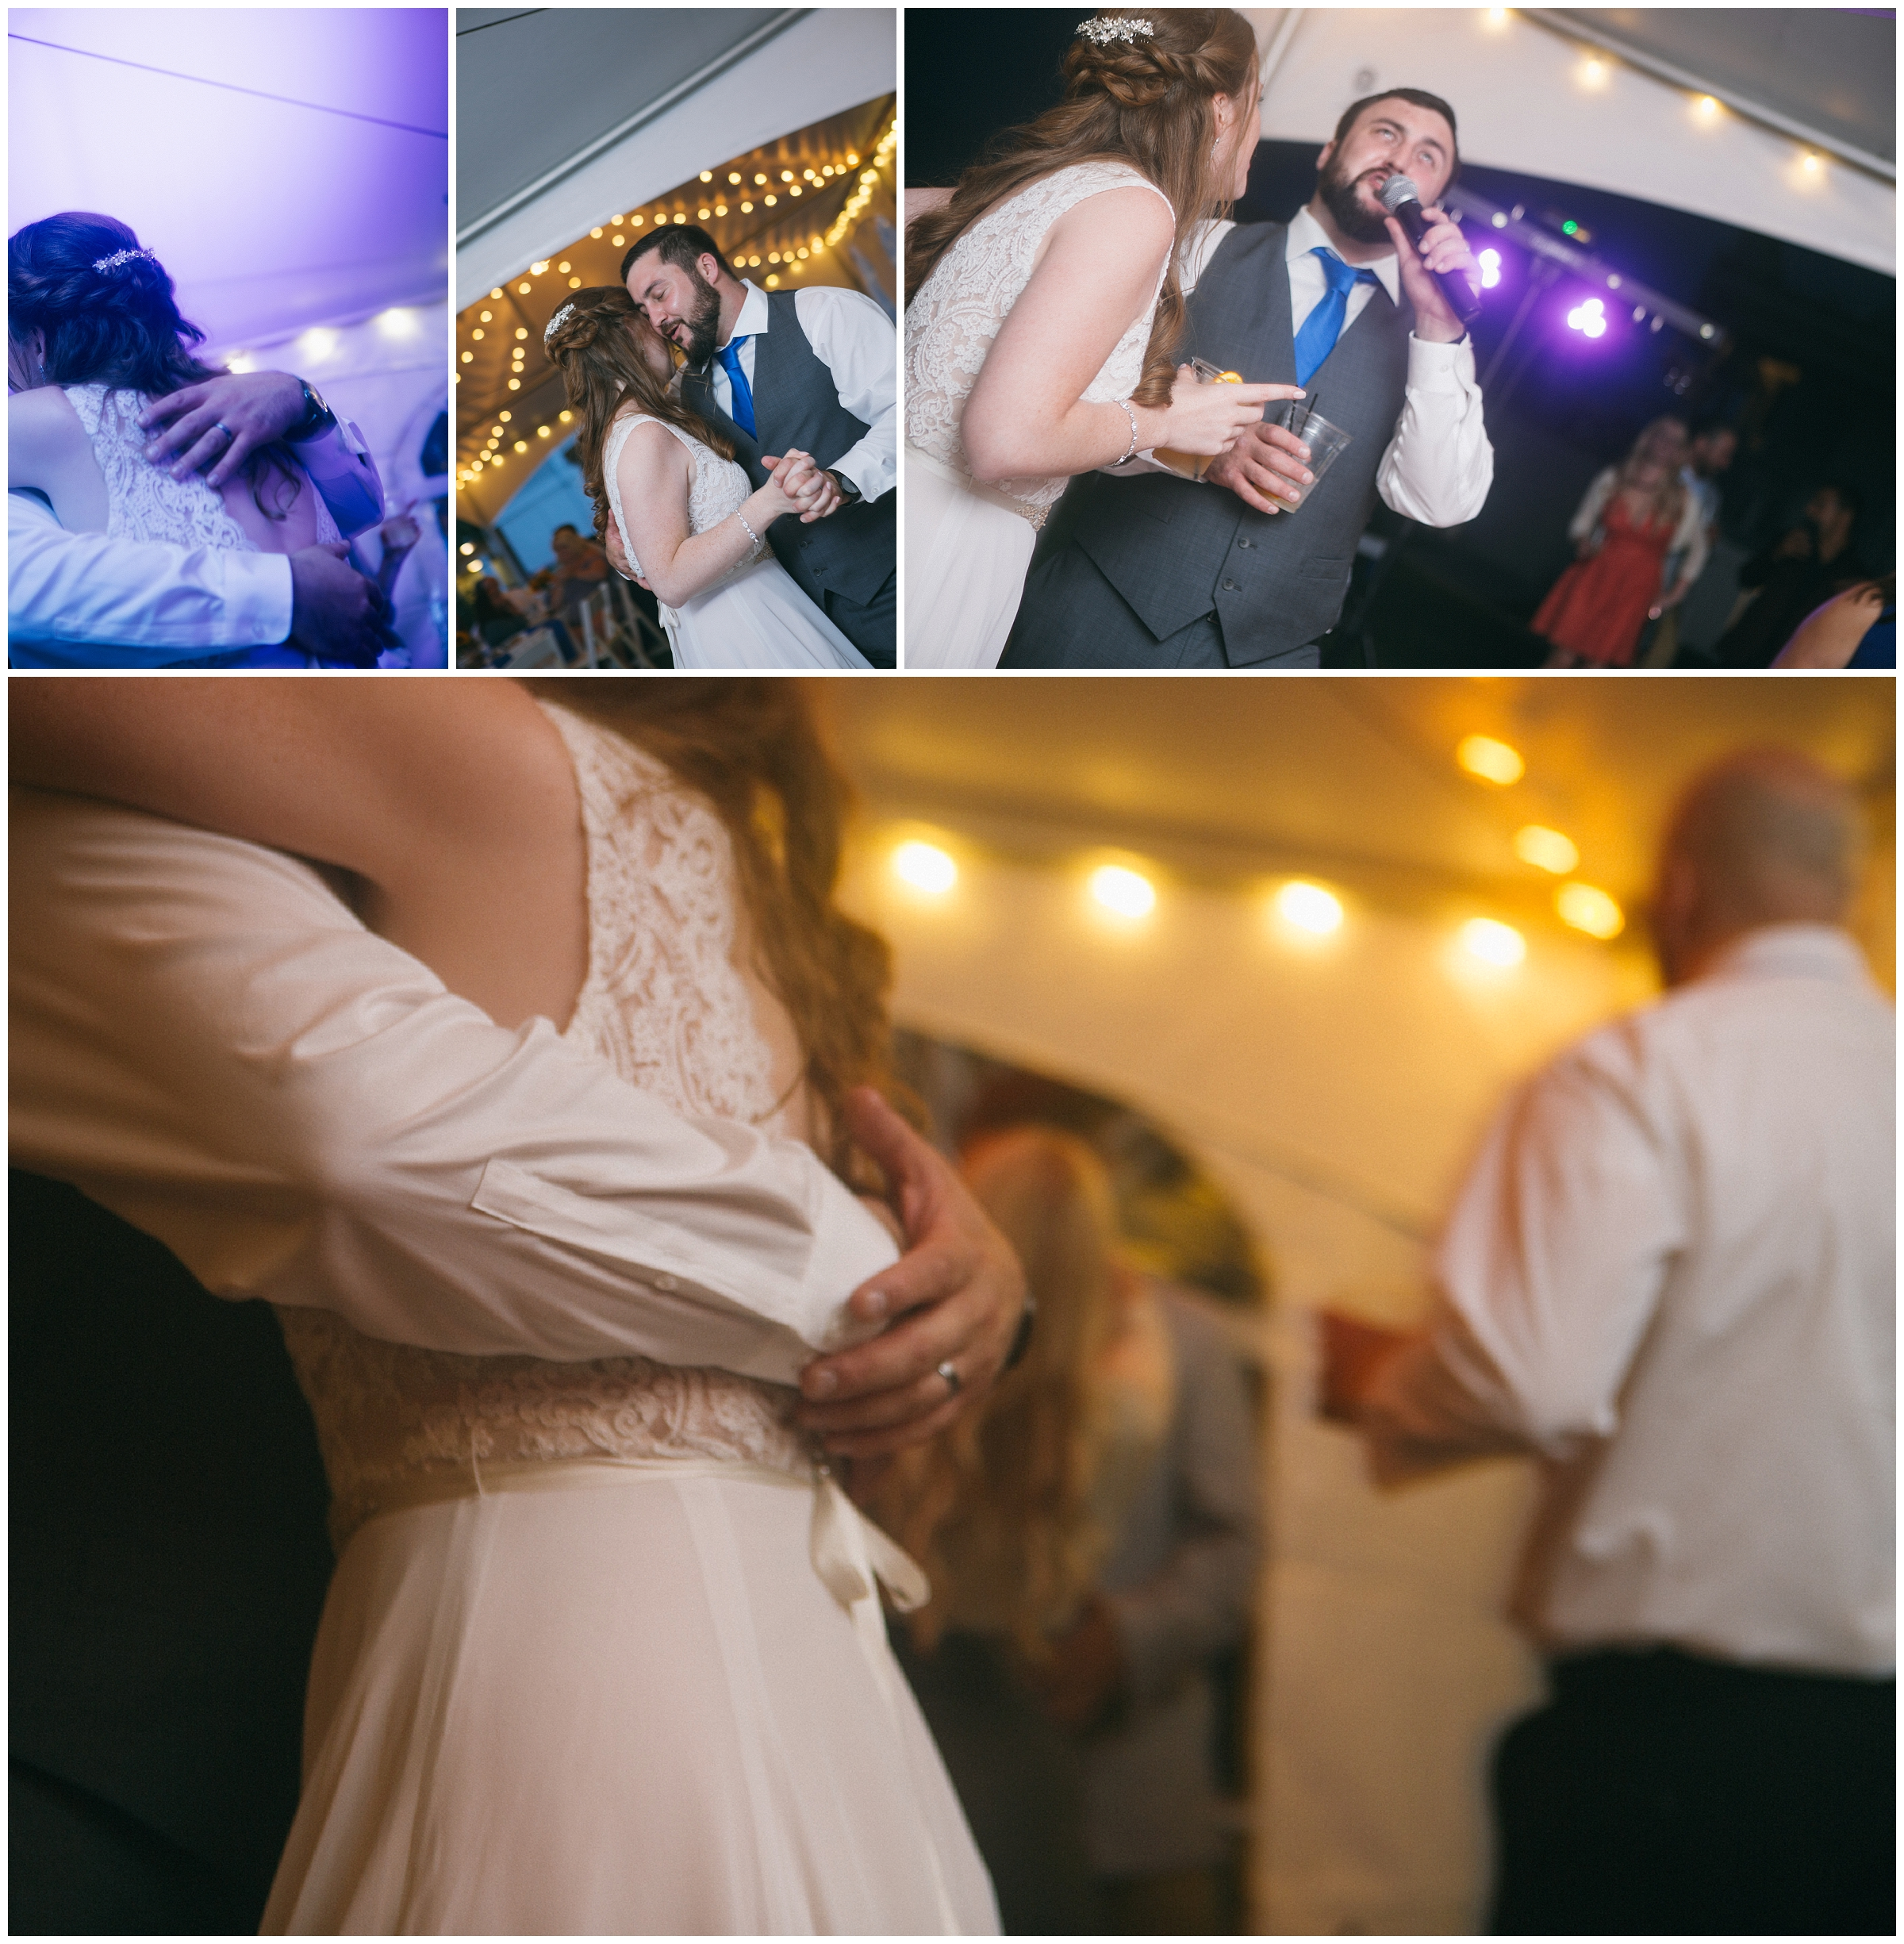 Photographs of the bride and groom dancing, embracing with their arms around one another, as well as a bit of impromptu karaoke at the Beachmere Inn in Ogunquit Maine. Wedding Photography by Ryan Richardson Photography